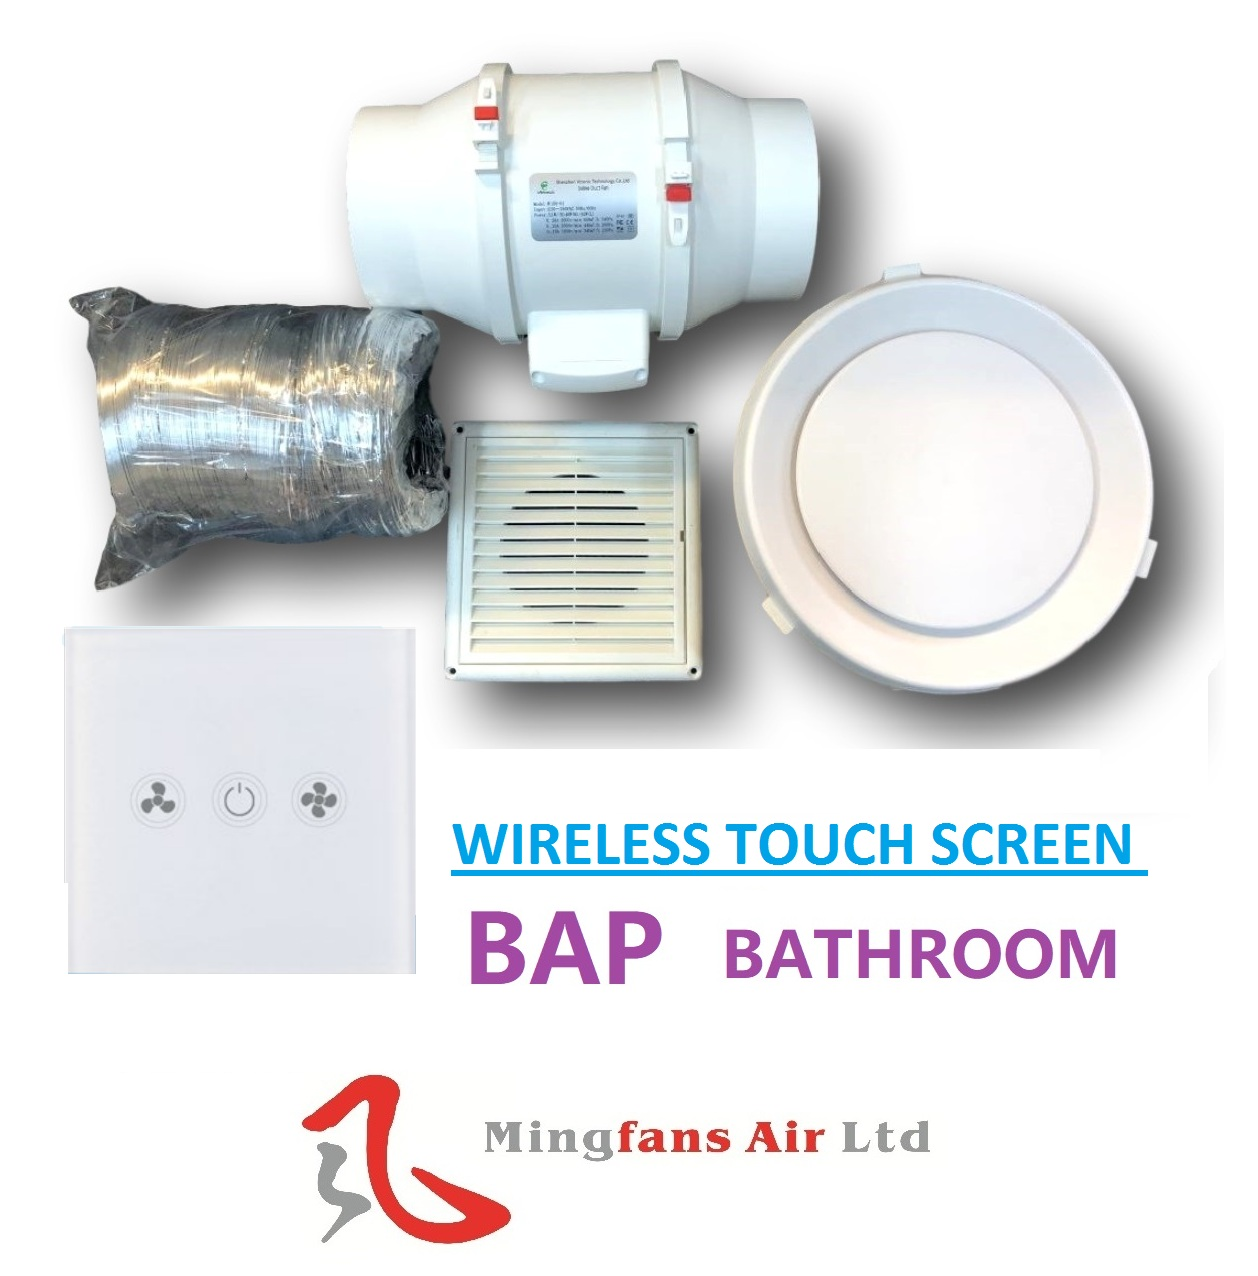 BAP & BAPR SERIES BATHROOM/EXHAUST FAN SYSTEM